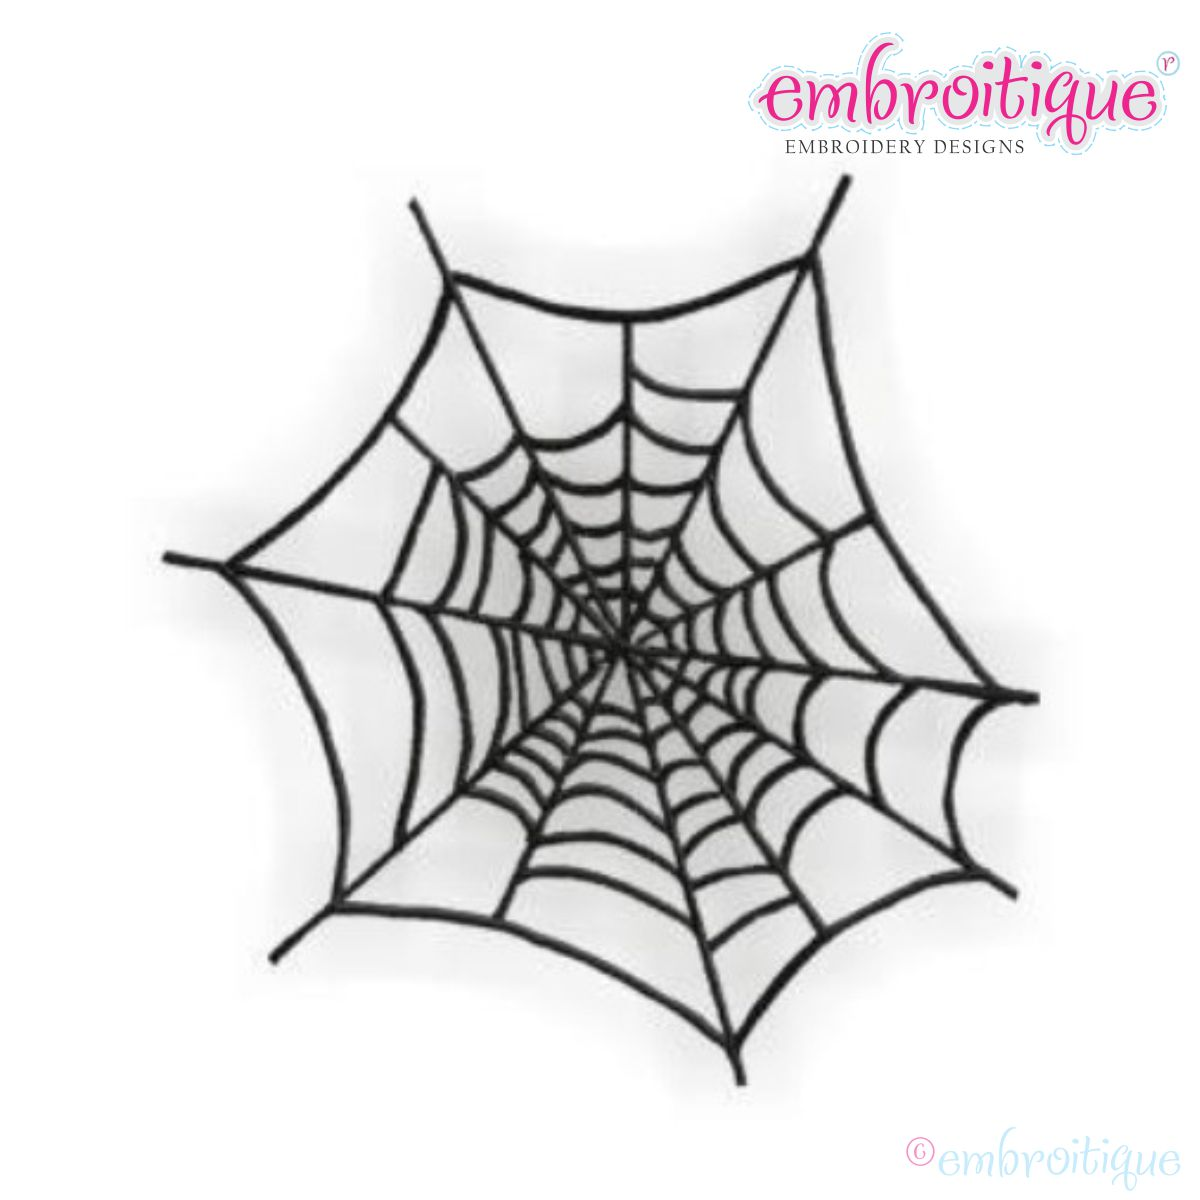 15 Spider Web Font Style Images Spider Web Embroidery Designs Spider Web Tattoo And Spider Web Font Newdesignfile Com